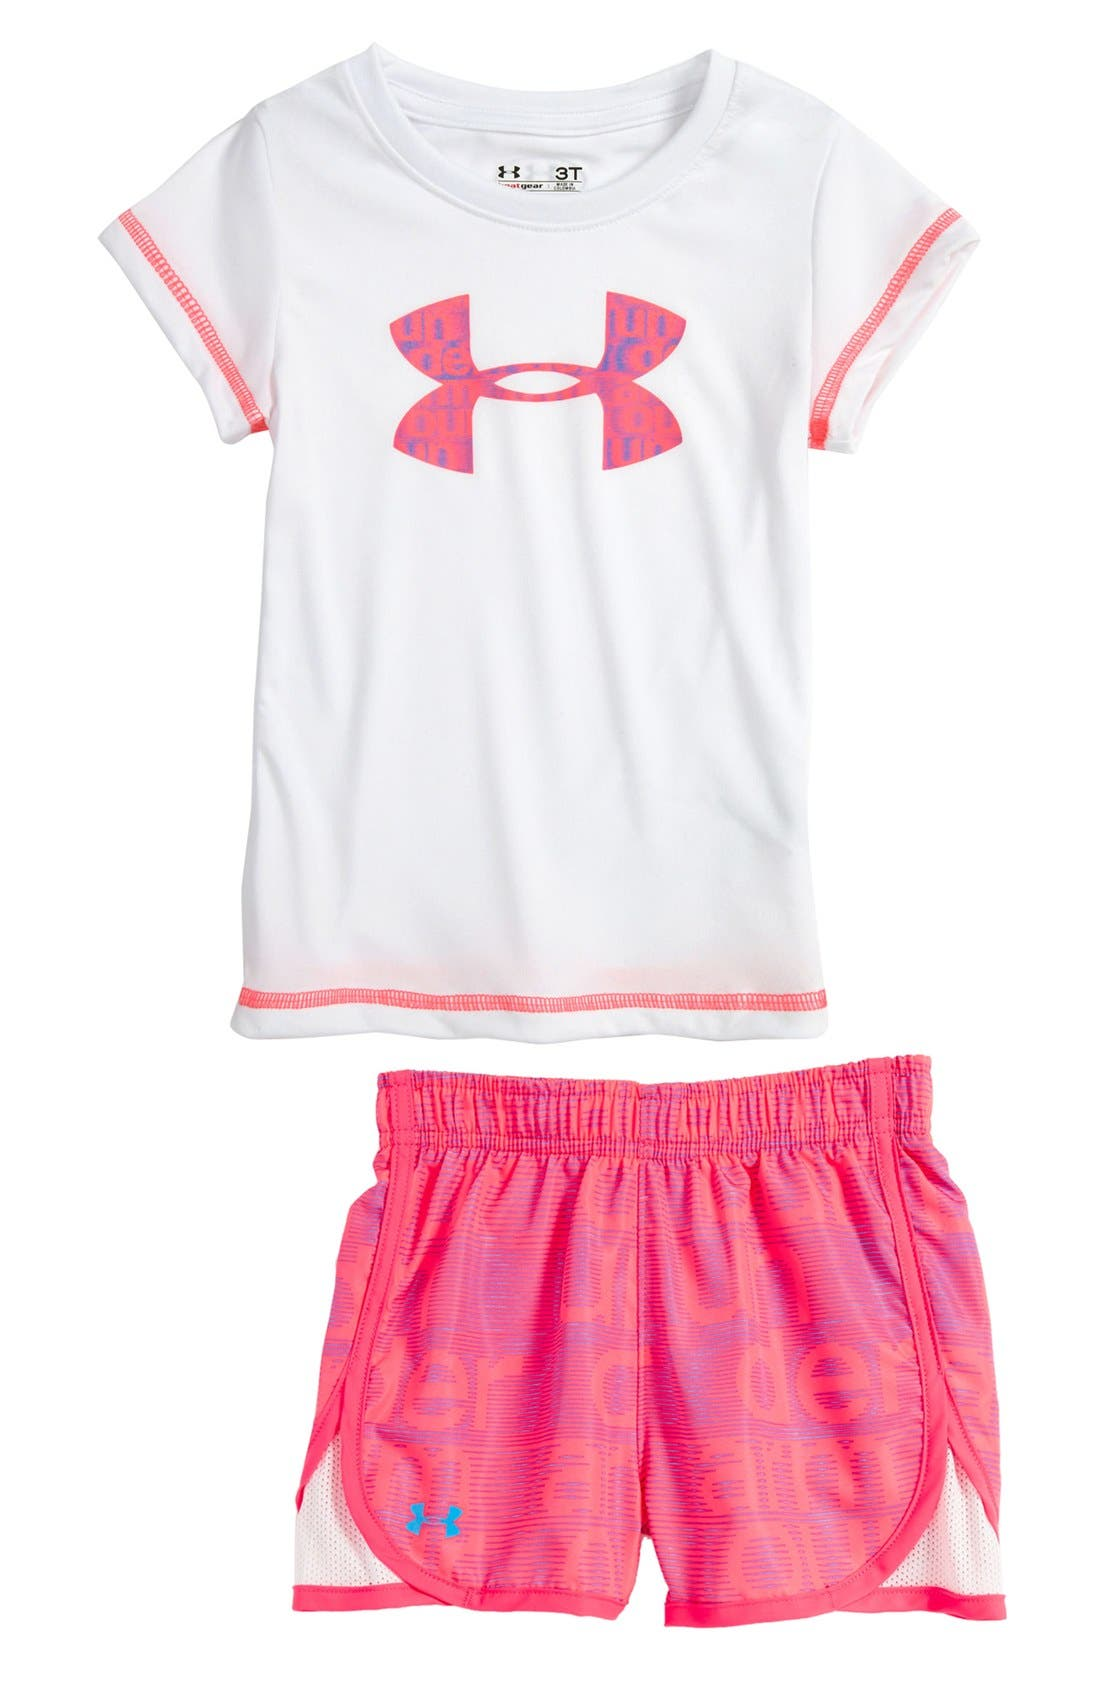 Main Image - Under Armour Tee & Shorts (Toddler)